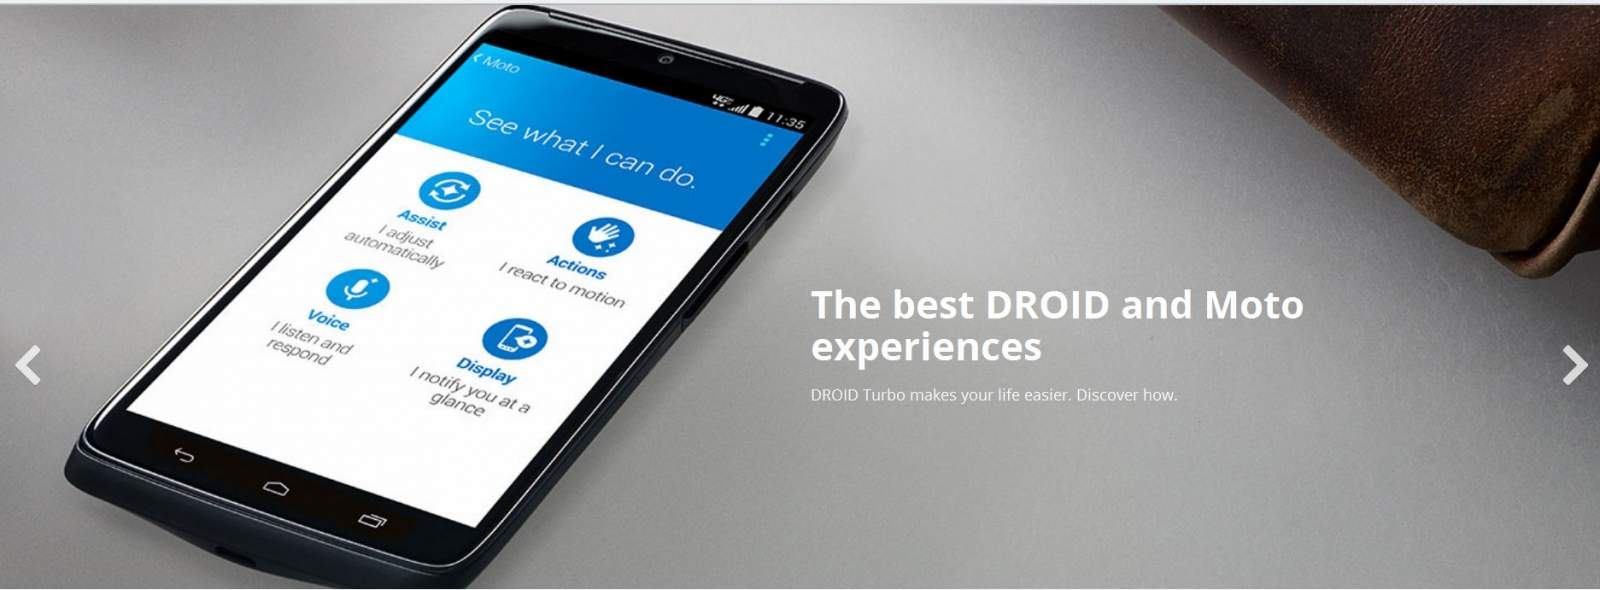 Test Drive Motorola DROID Turbo Lollipop di Website